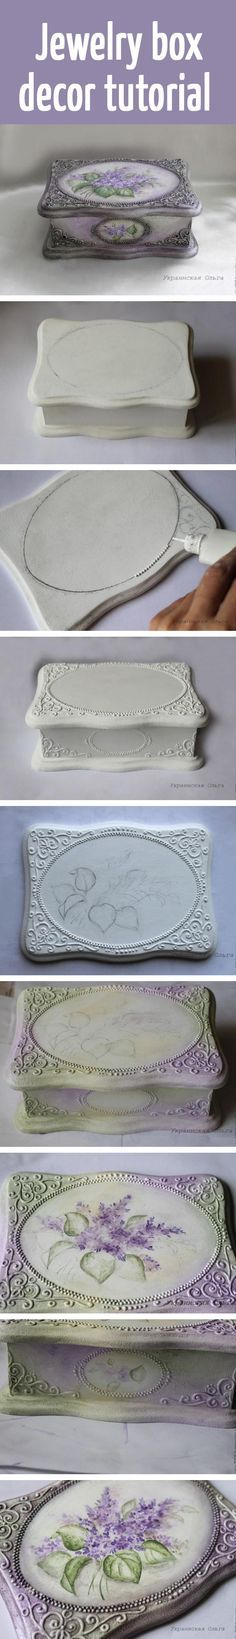 Jewelry box decor tutorial More